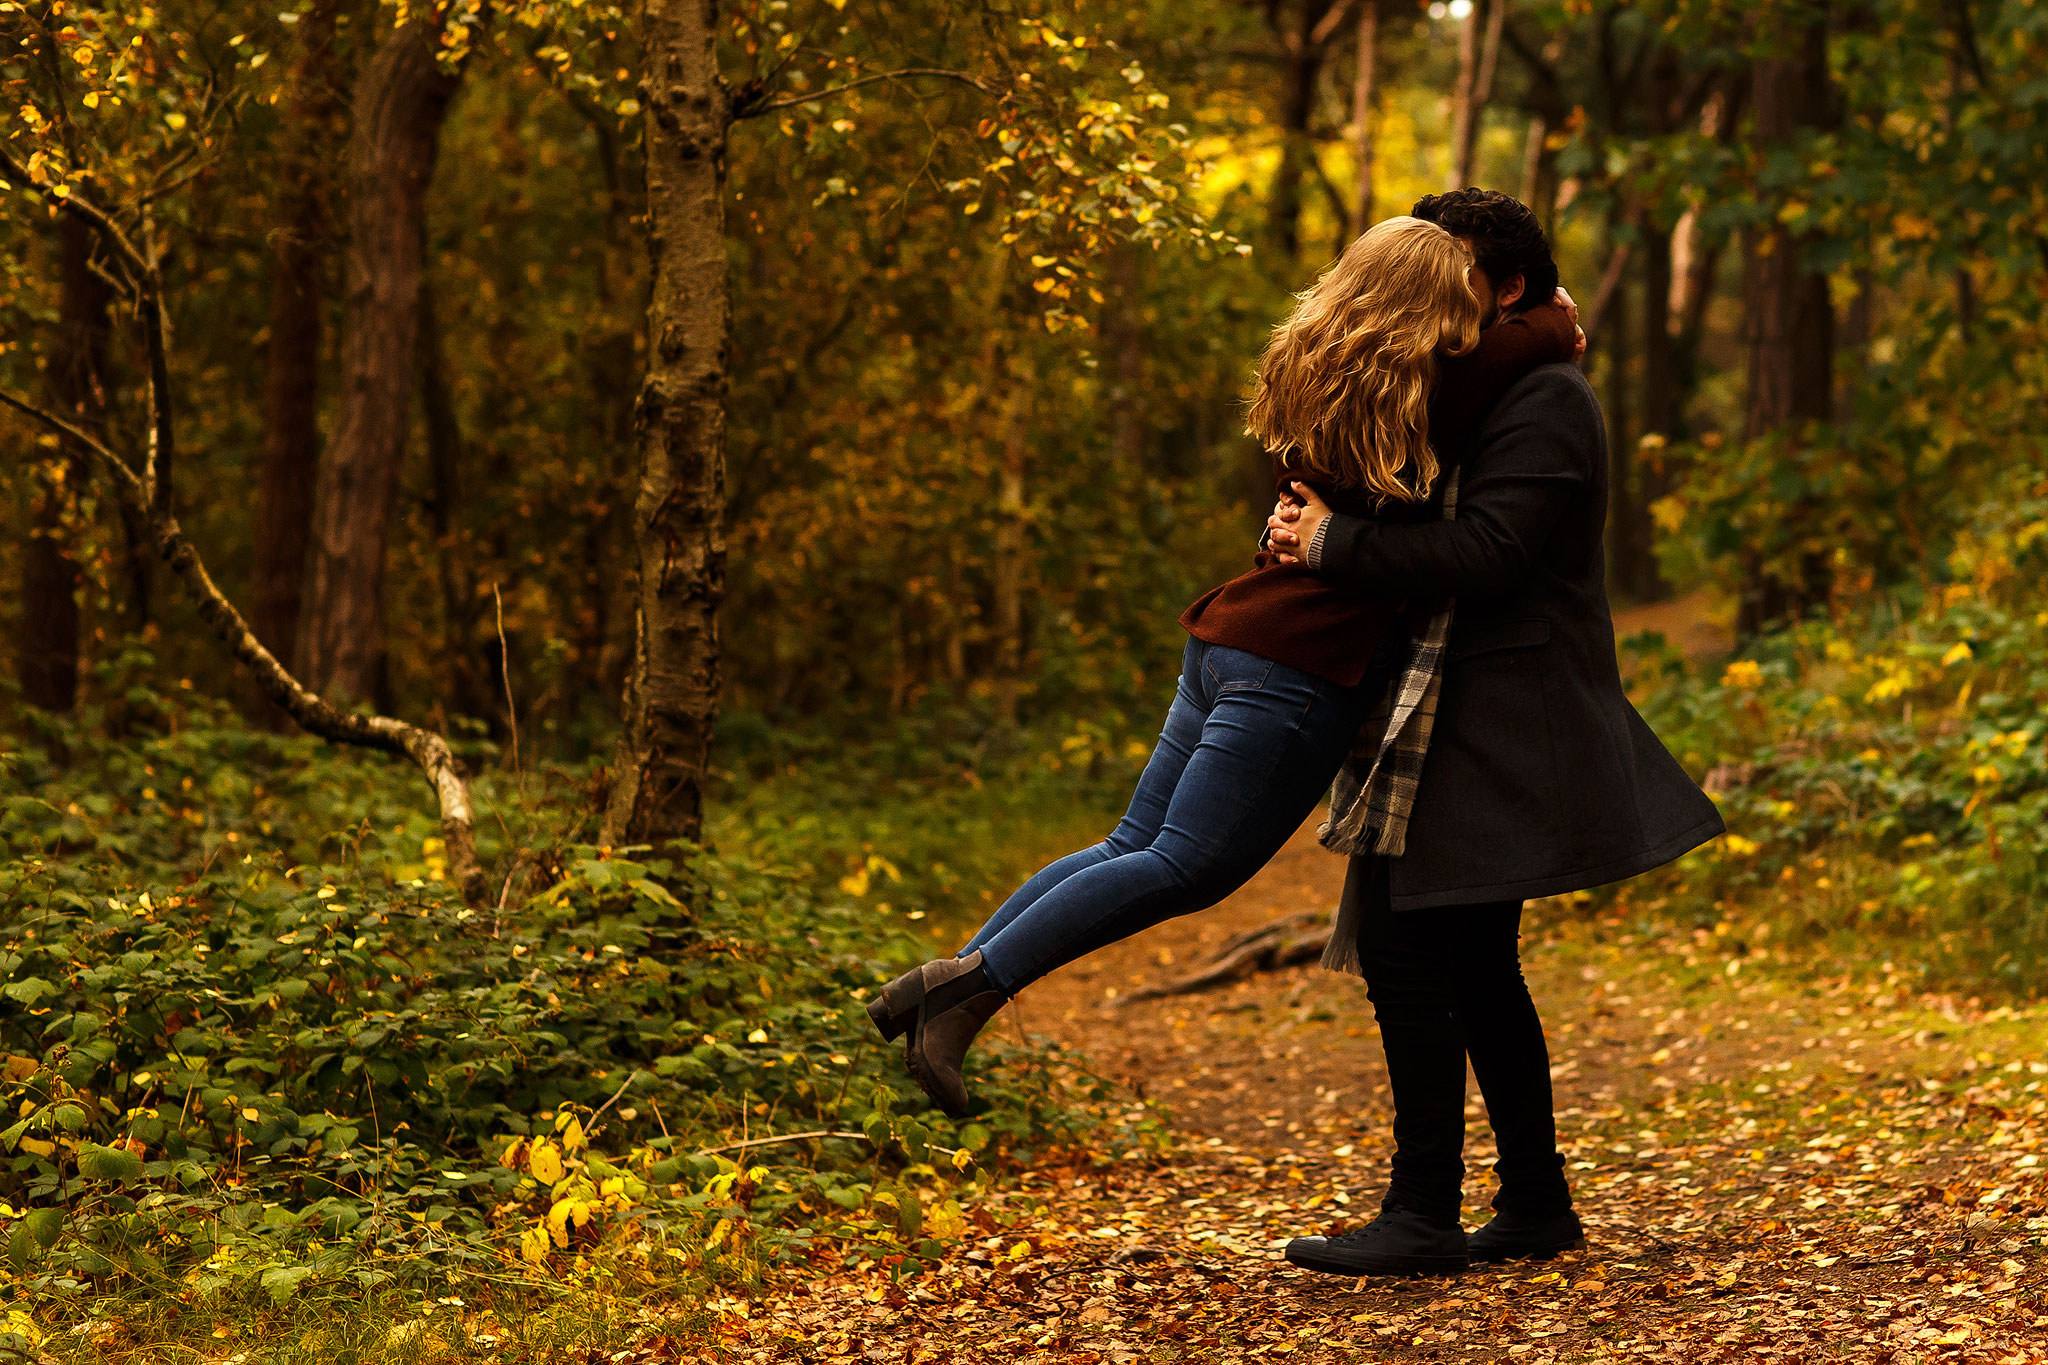 Autumn engagement shoot in the woods with golden leaves. Boy swinging girl around on the pathway.